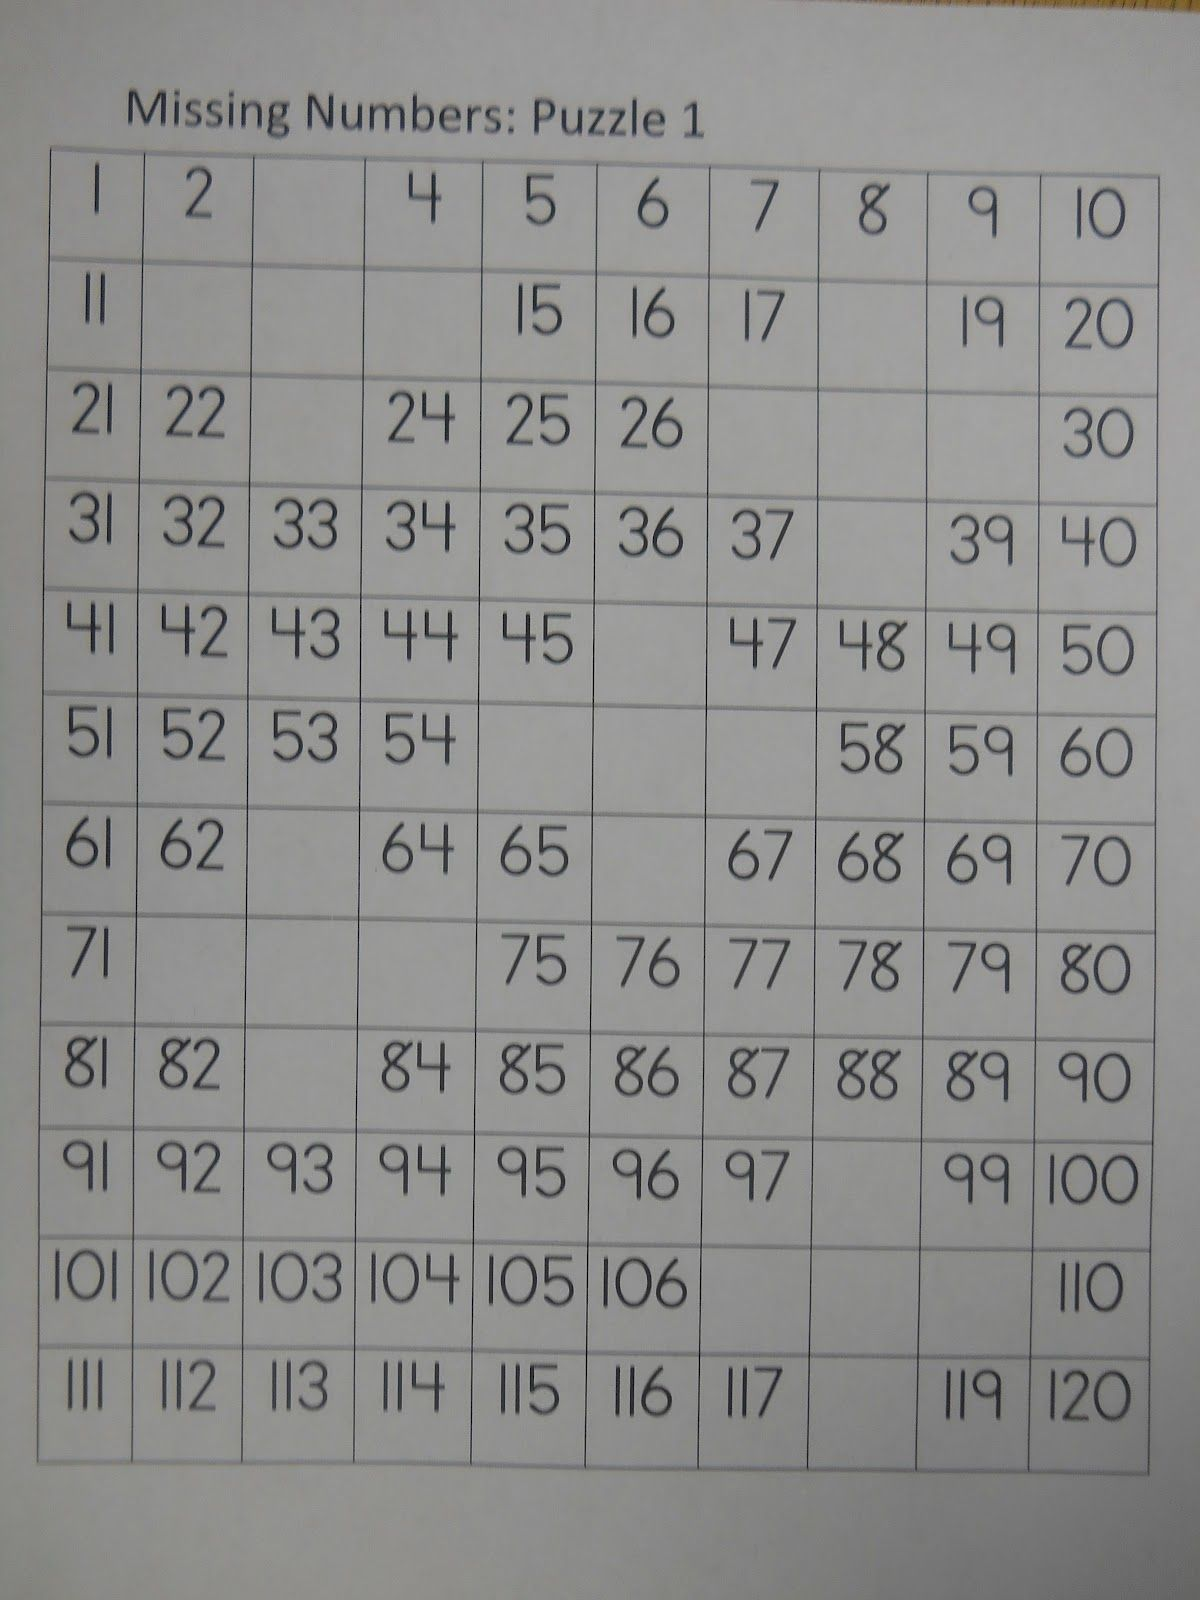 Missing Numbers Puzzle 1